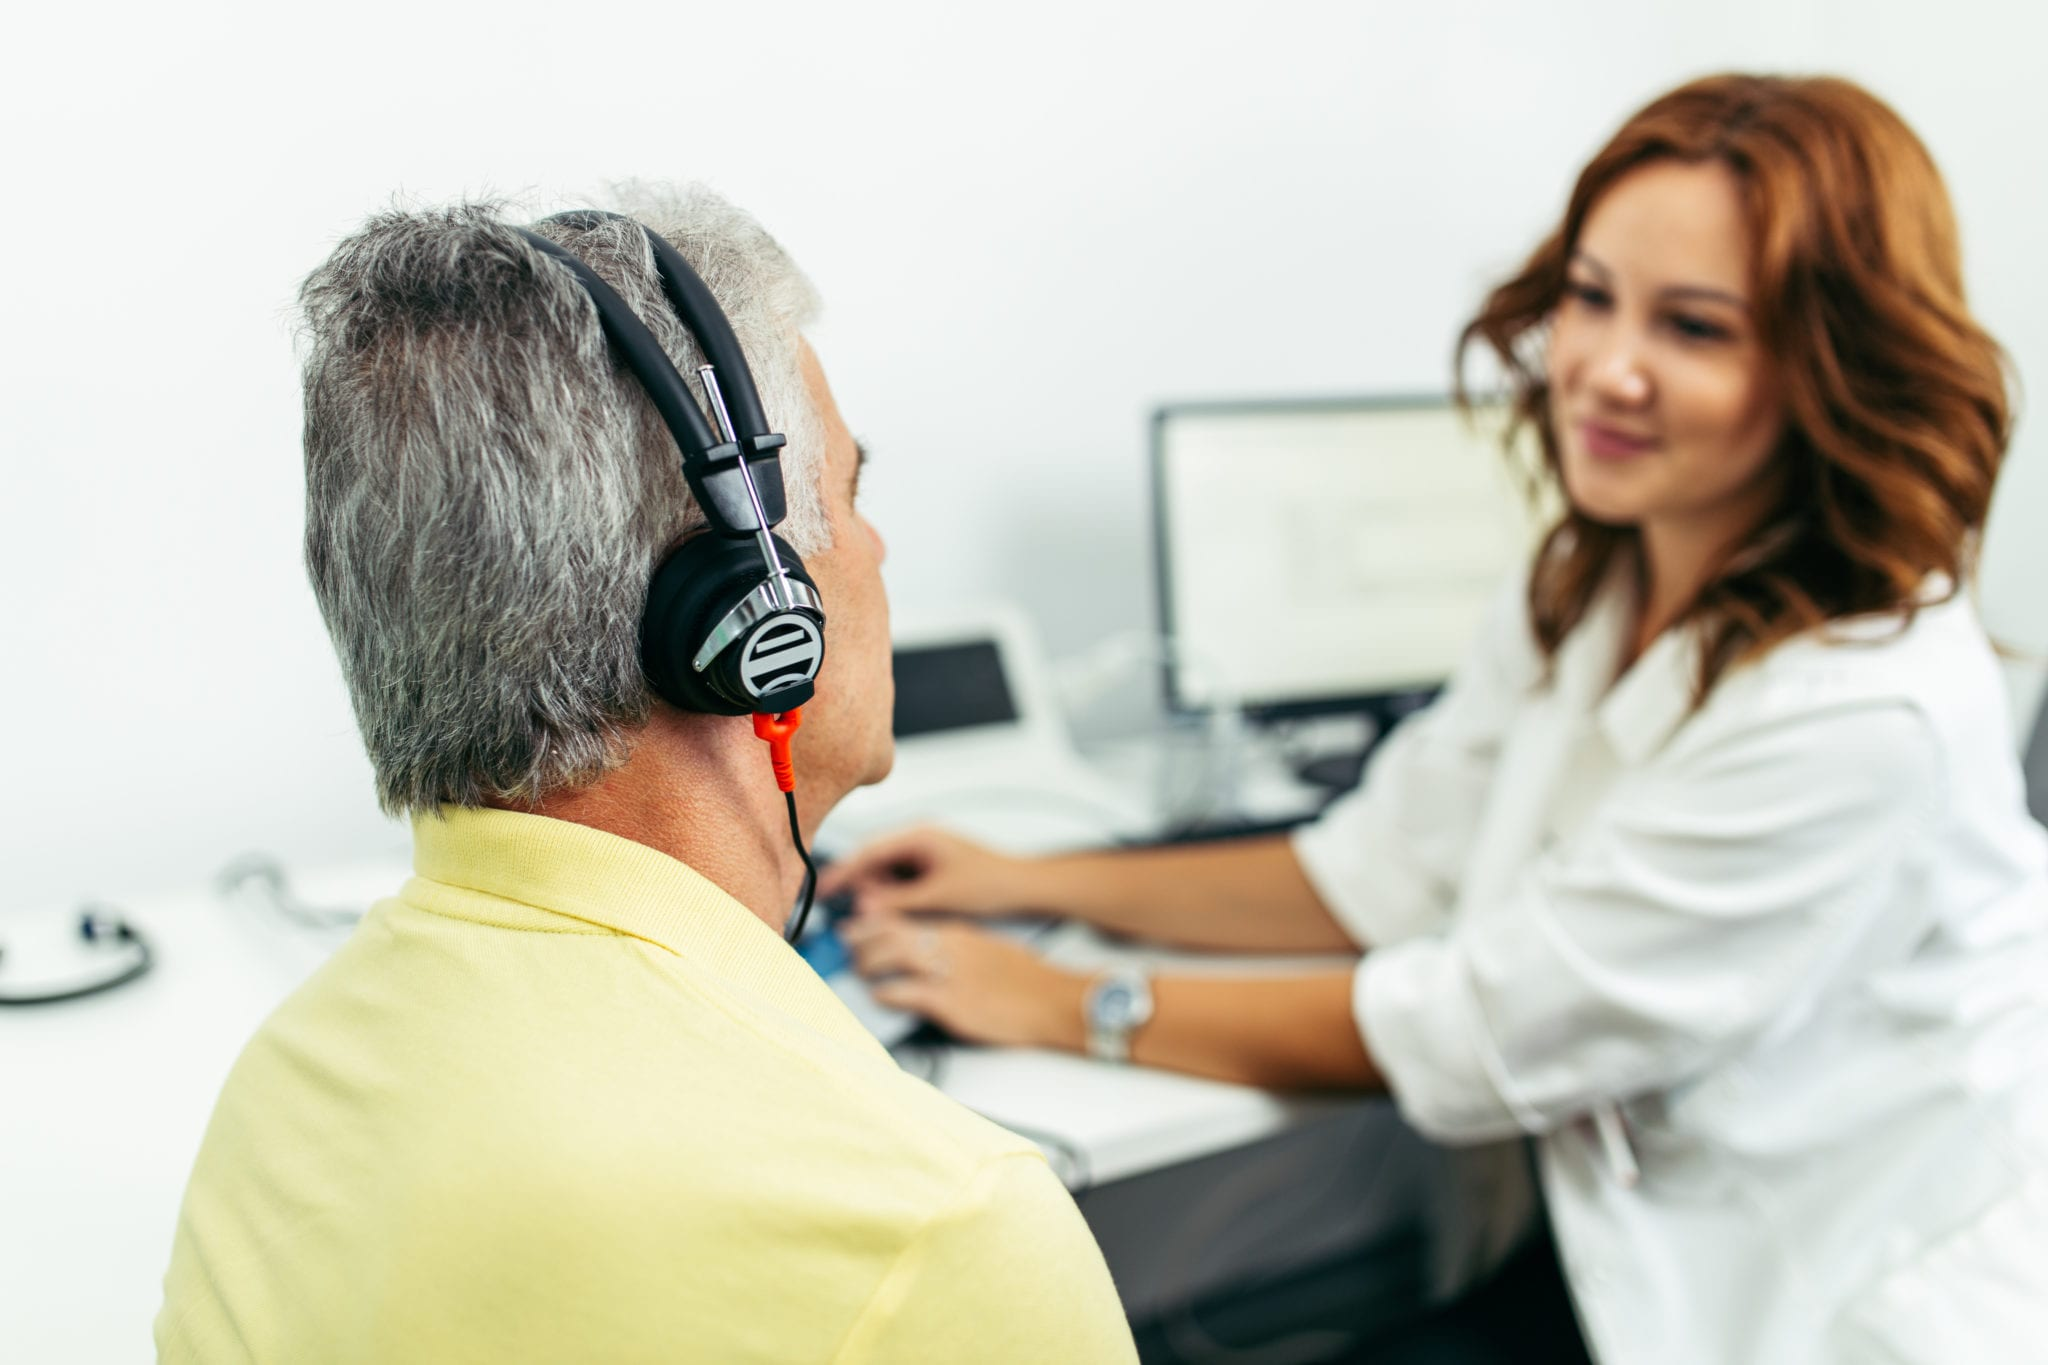 What accessories do hearing aids come with to make them easier to use?